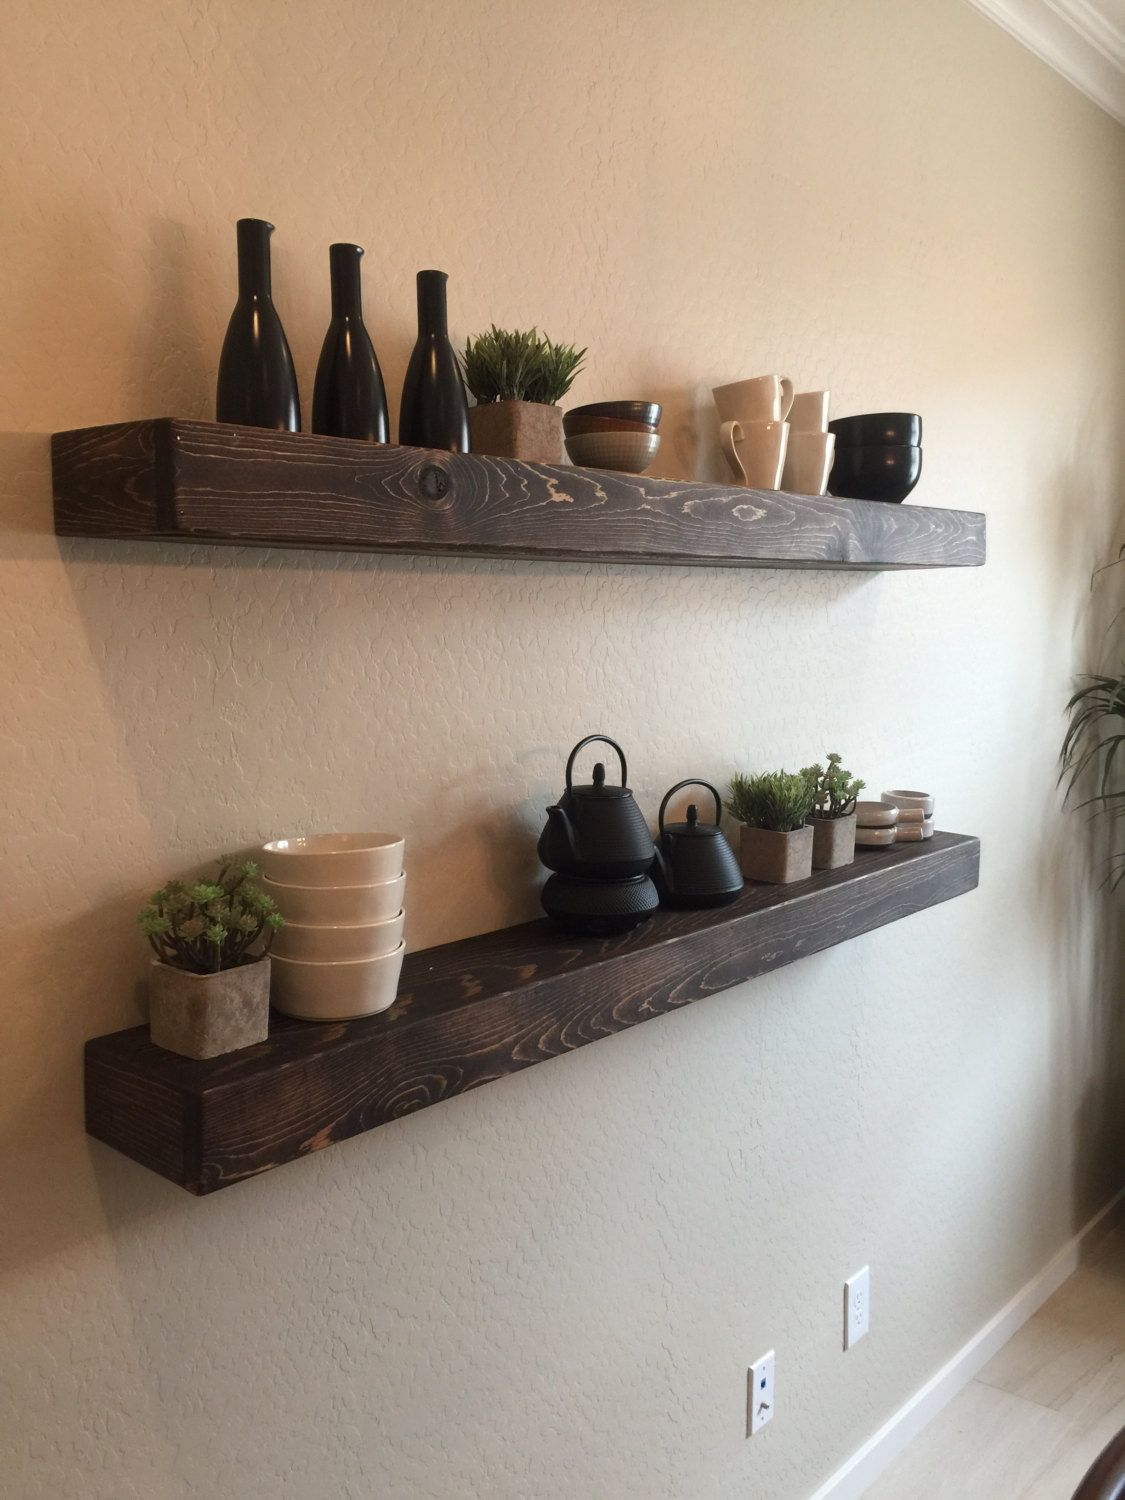 set of 2 large rustic style floating shelves 60 l x 7 d espresso finish hand made to on kitchen floating shelves id=79894